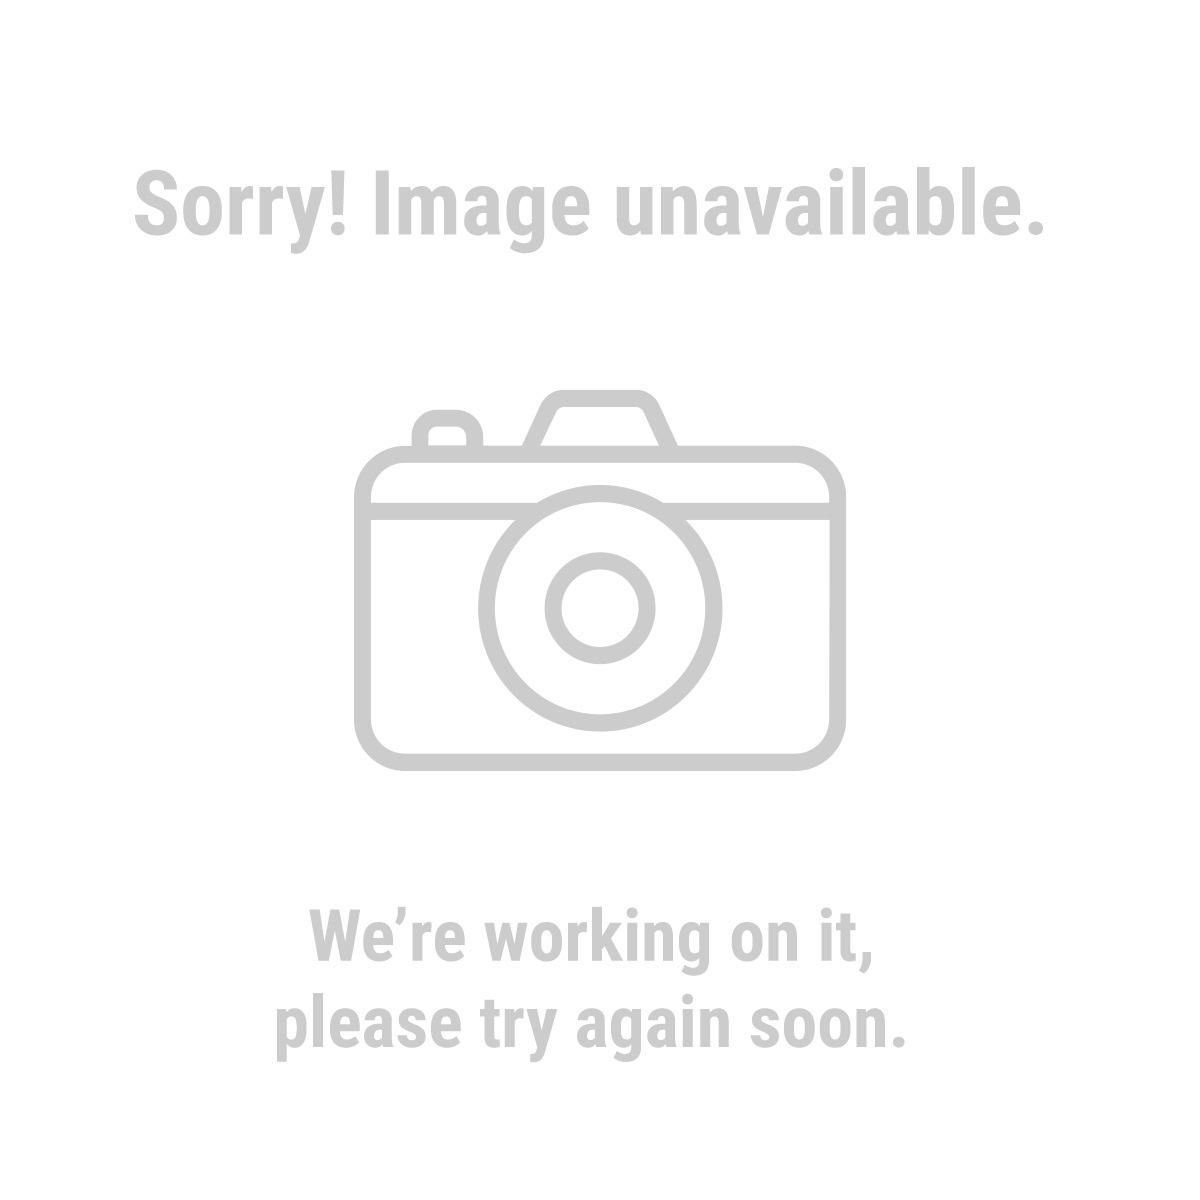 Meguiar's 96662 PlastX™ Clear Plastic Cleaner and Polish